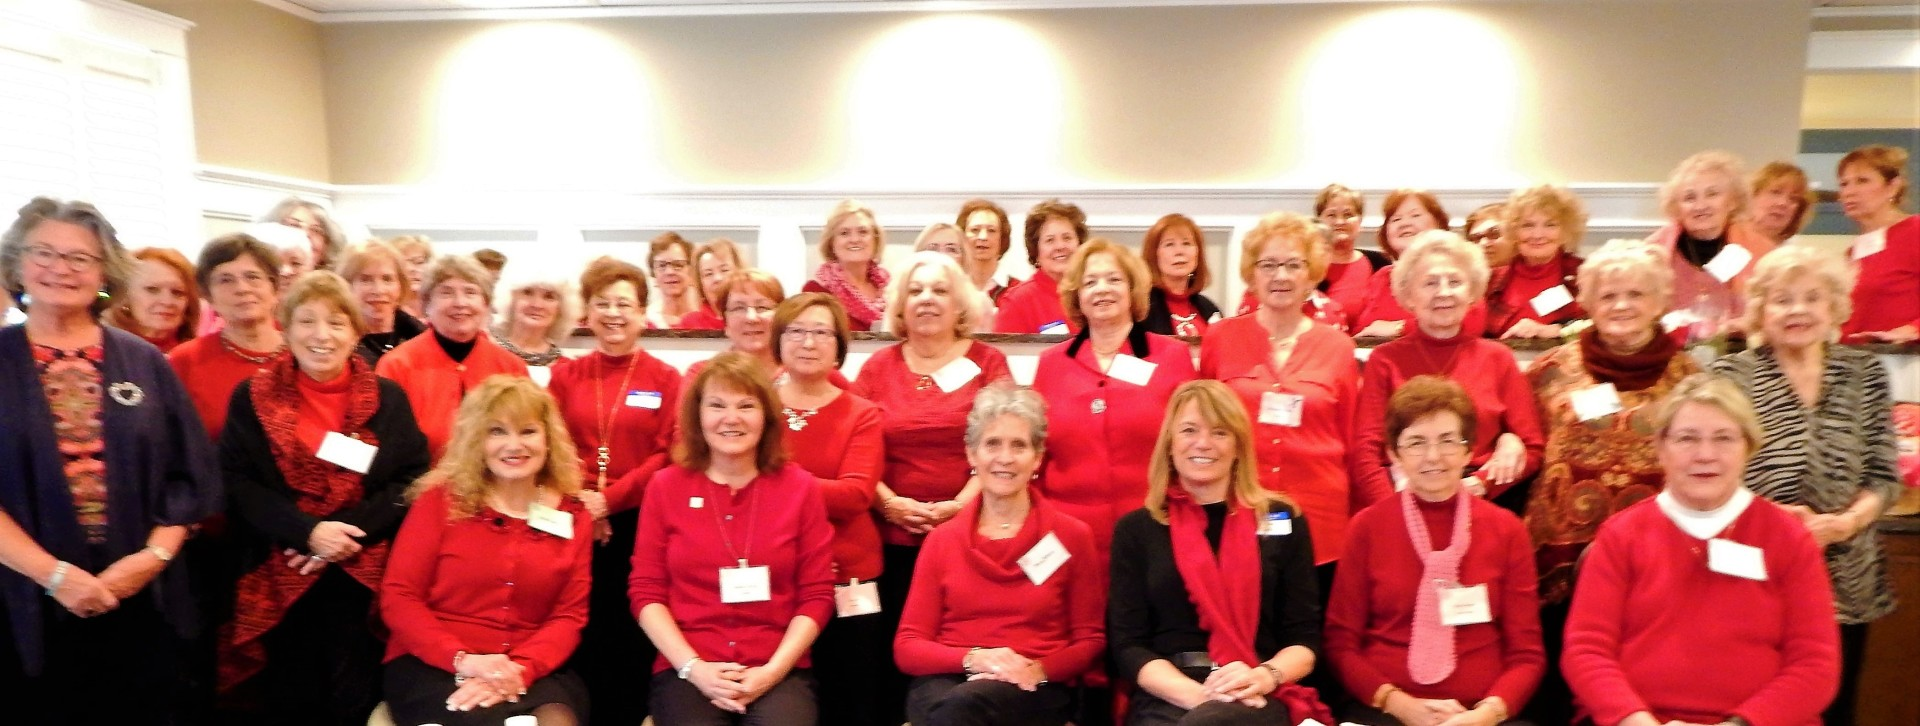 Feb 3rd, 2017 was National Wear Red Day... we wear it to support Women's Heart Health